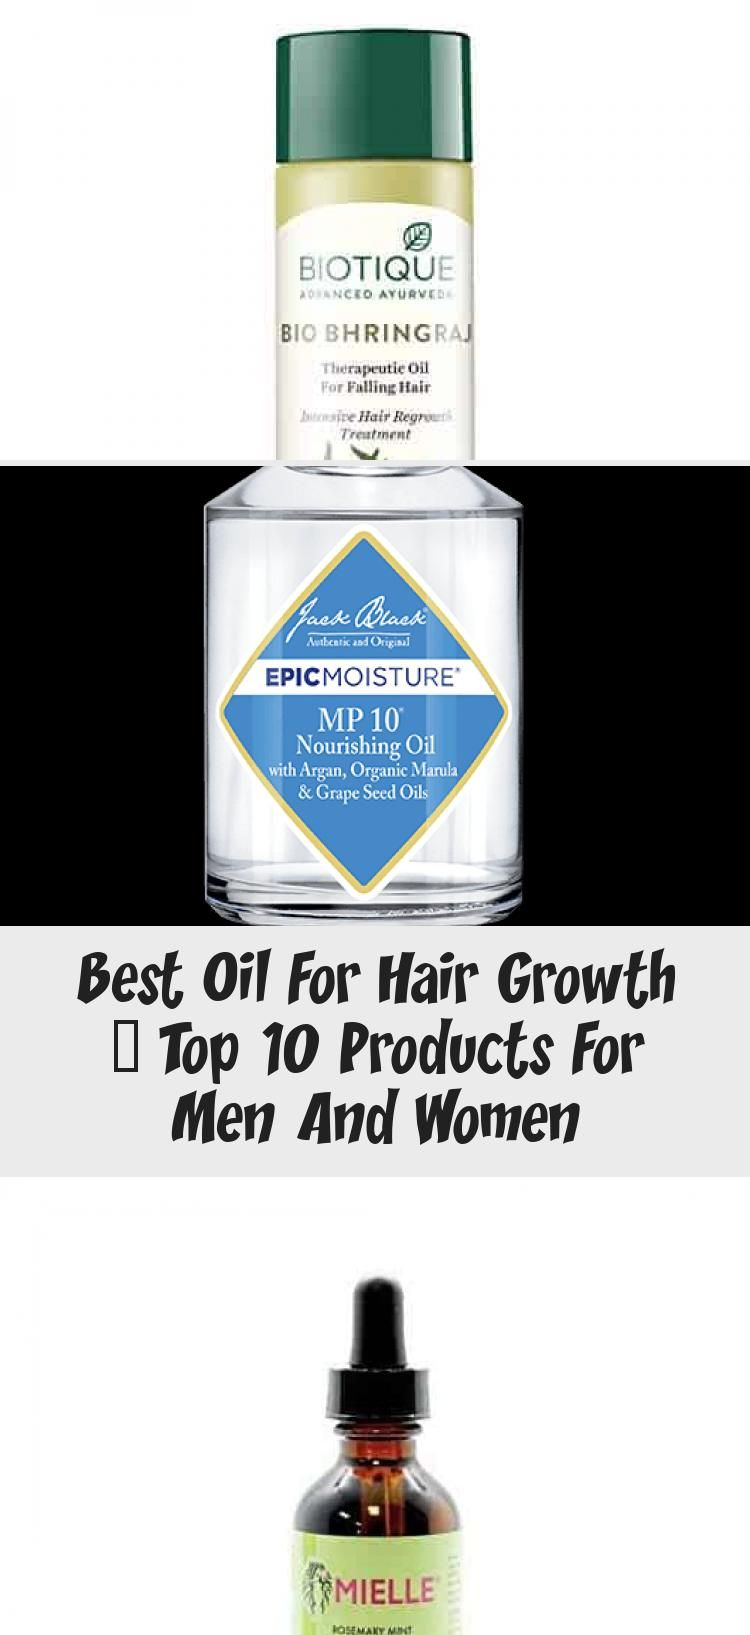 Vitamins for Hair Growth} and Best Oil For Hair Growth – Top 10 Products For Men And Women #Quickhairgrowth #AppleCiderVinegarhairgrowth #hairgrowthDoterra #hairgrowthSmoothie #hairgrowthInAWeek